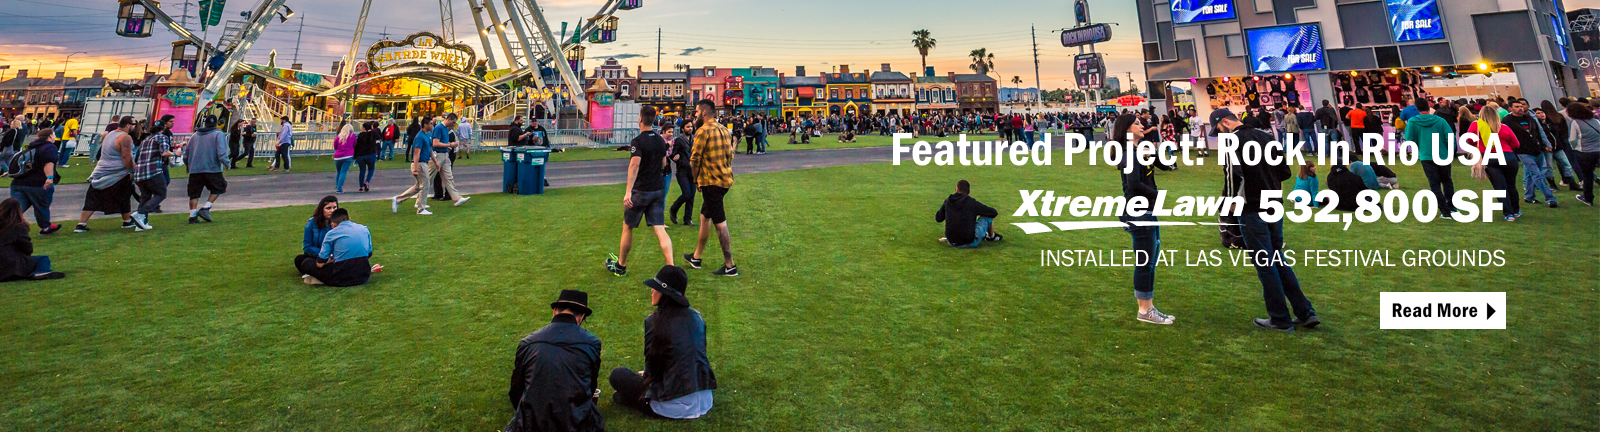 Rock In Rio in Las Vegas featured Act Global's Xtreme Lawn synthetic landscape turf